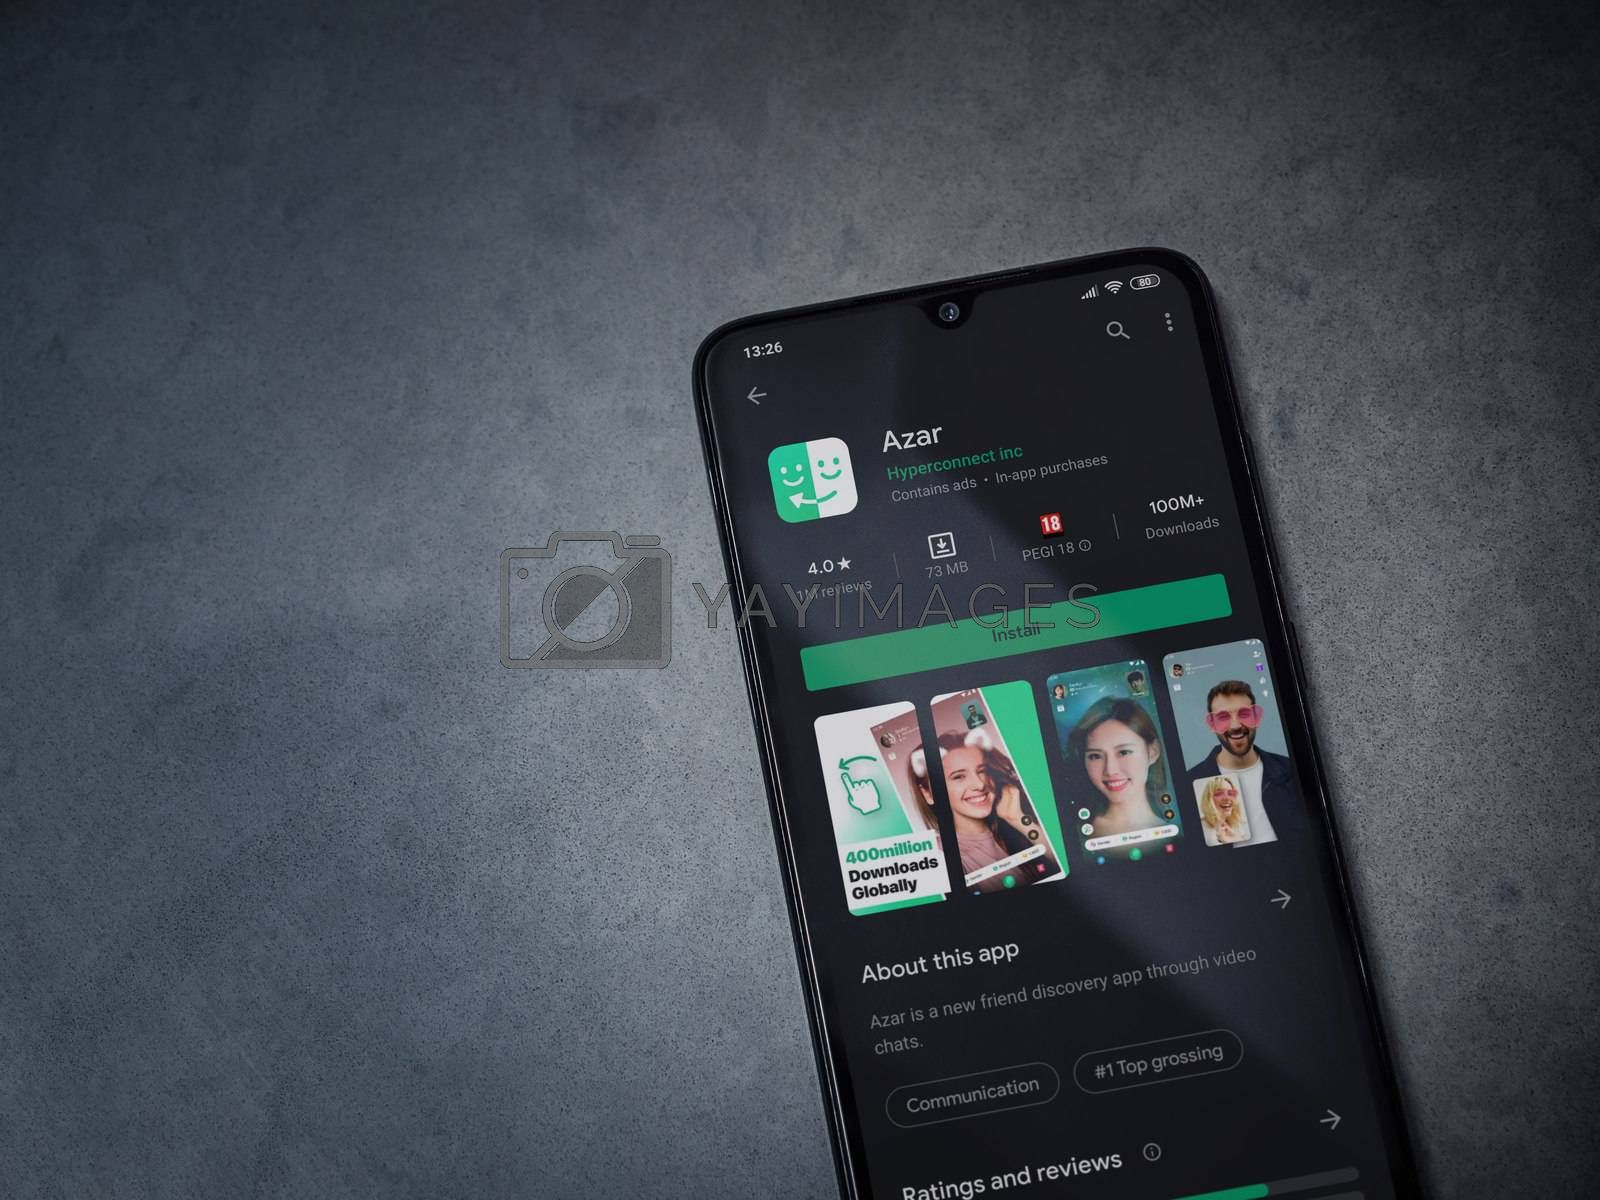 Lod, Israel - July 8, 2020: Azar app play store page on the display of a black mobile smartphone on dark marble stone background. Top view flat lay with copy space.